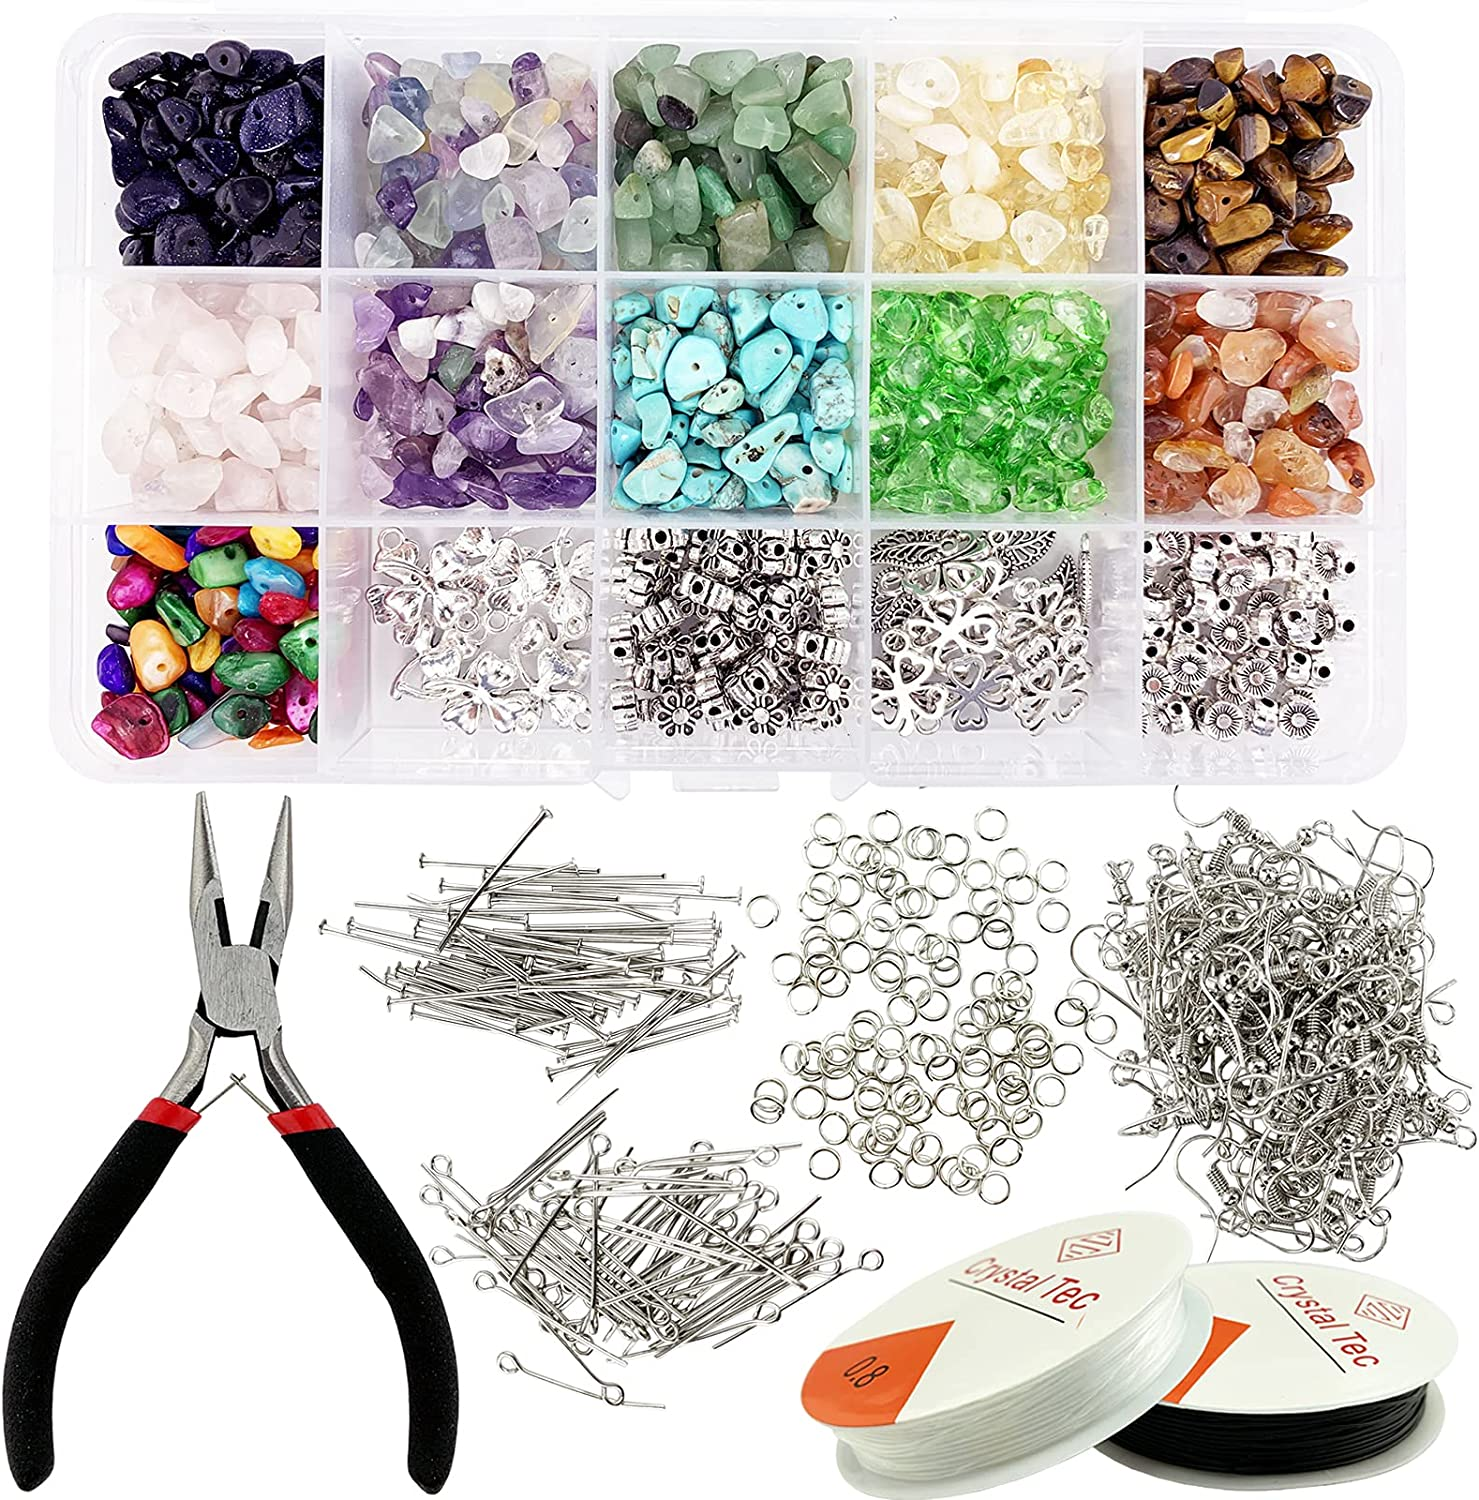 983pcs Irregular Clearance SALE Limited time Crystal Bombing free shipping Stone Chips with Kit Beads Spacer